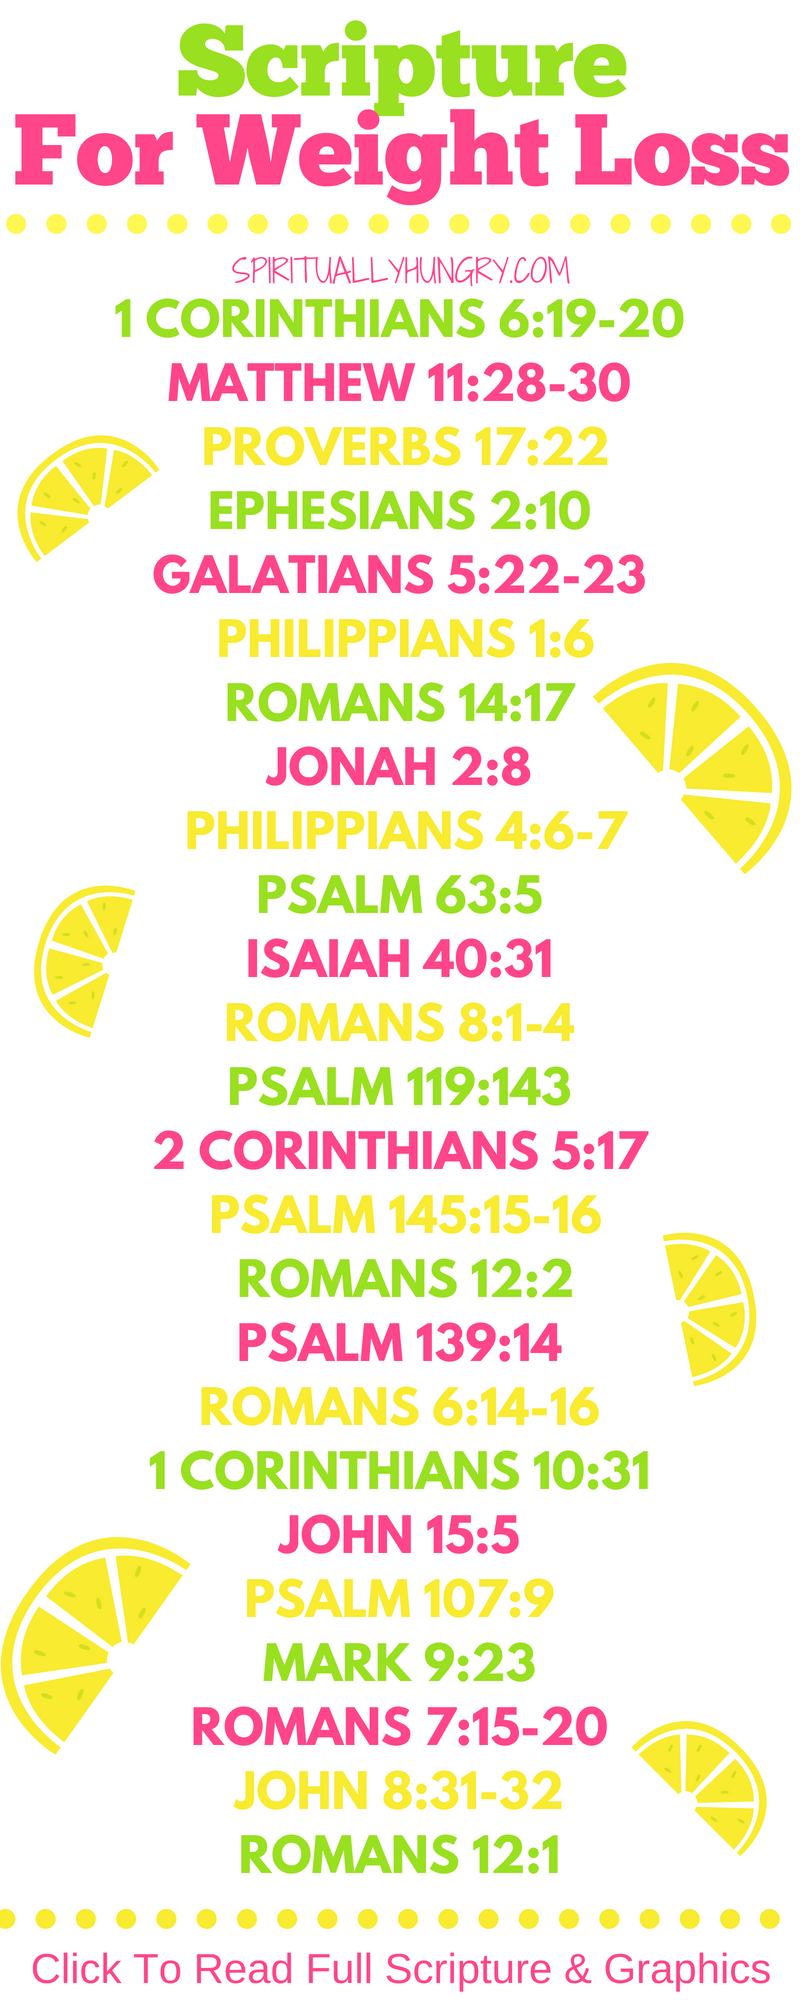 For Weight Loss Scripture for weight loss is an essential tool for success in your diet. Scripture can always help equip us for lasting change. If you are dieting or seeking a healthy lifestyle, these 25 scriptures for weight loss are for you!Scripture for weight loss is an essential tool for success in your diet. Scripture can always help equip us...